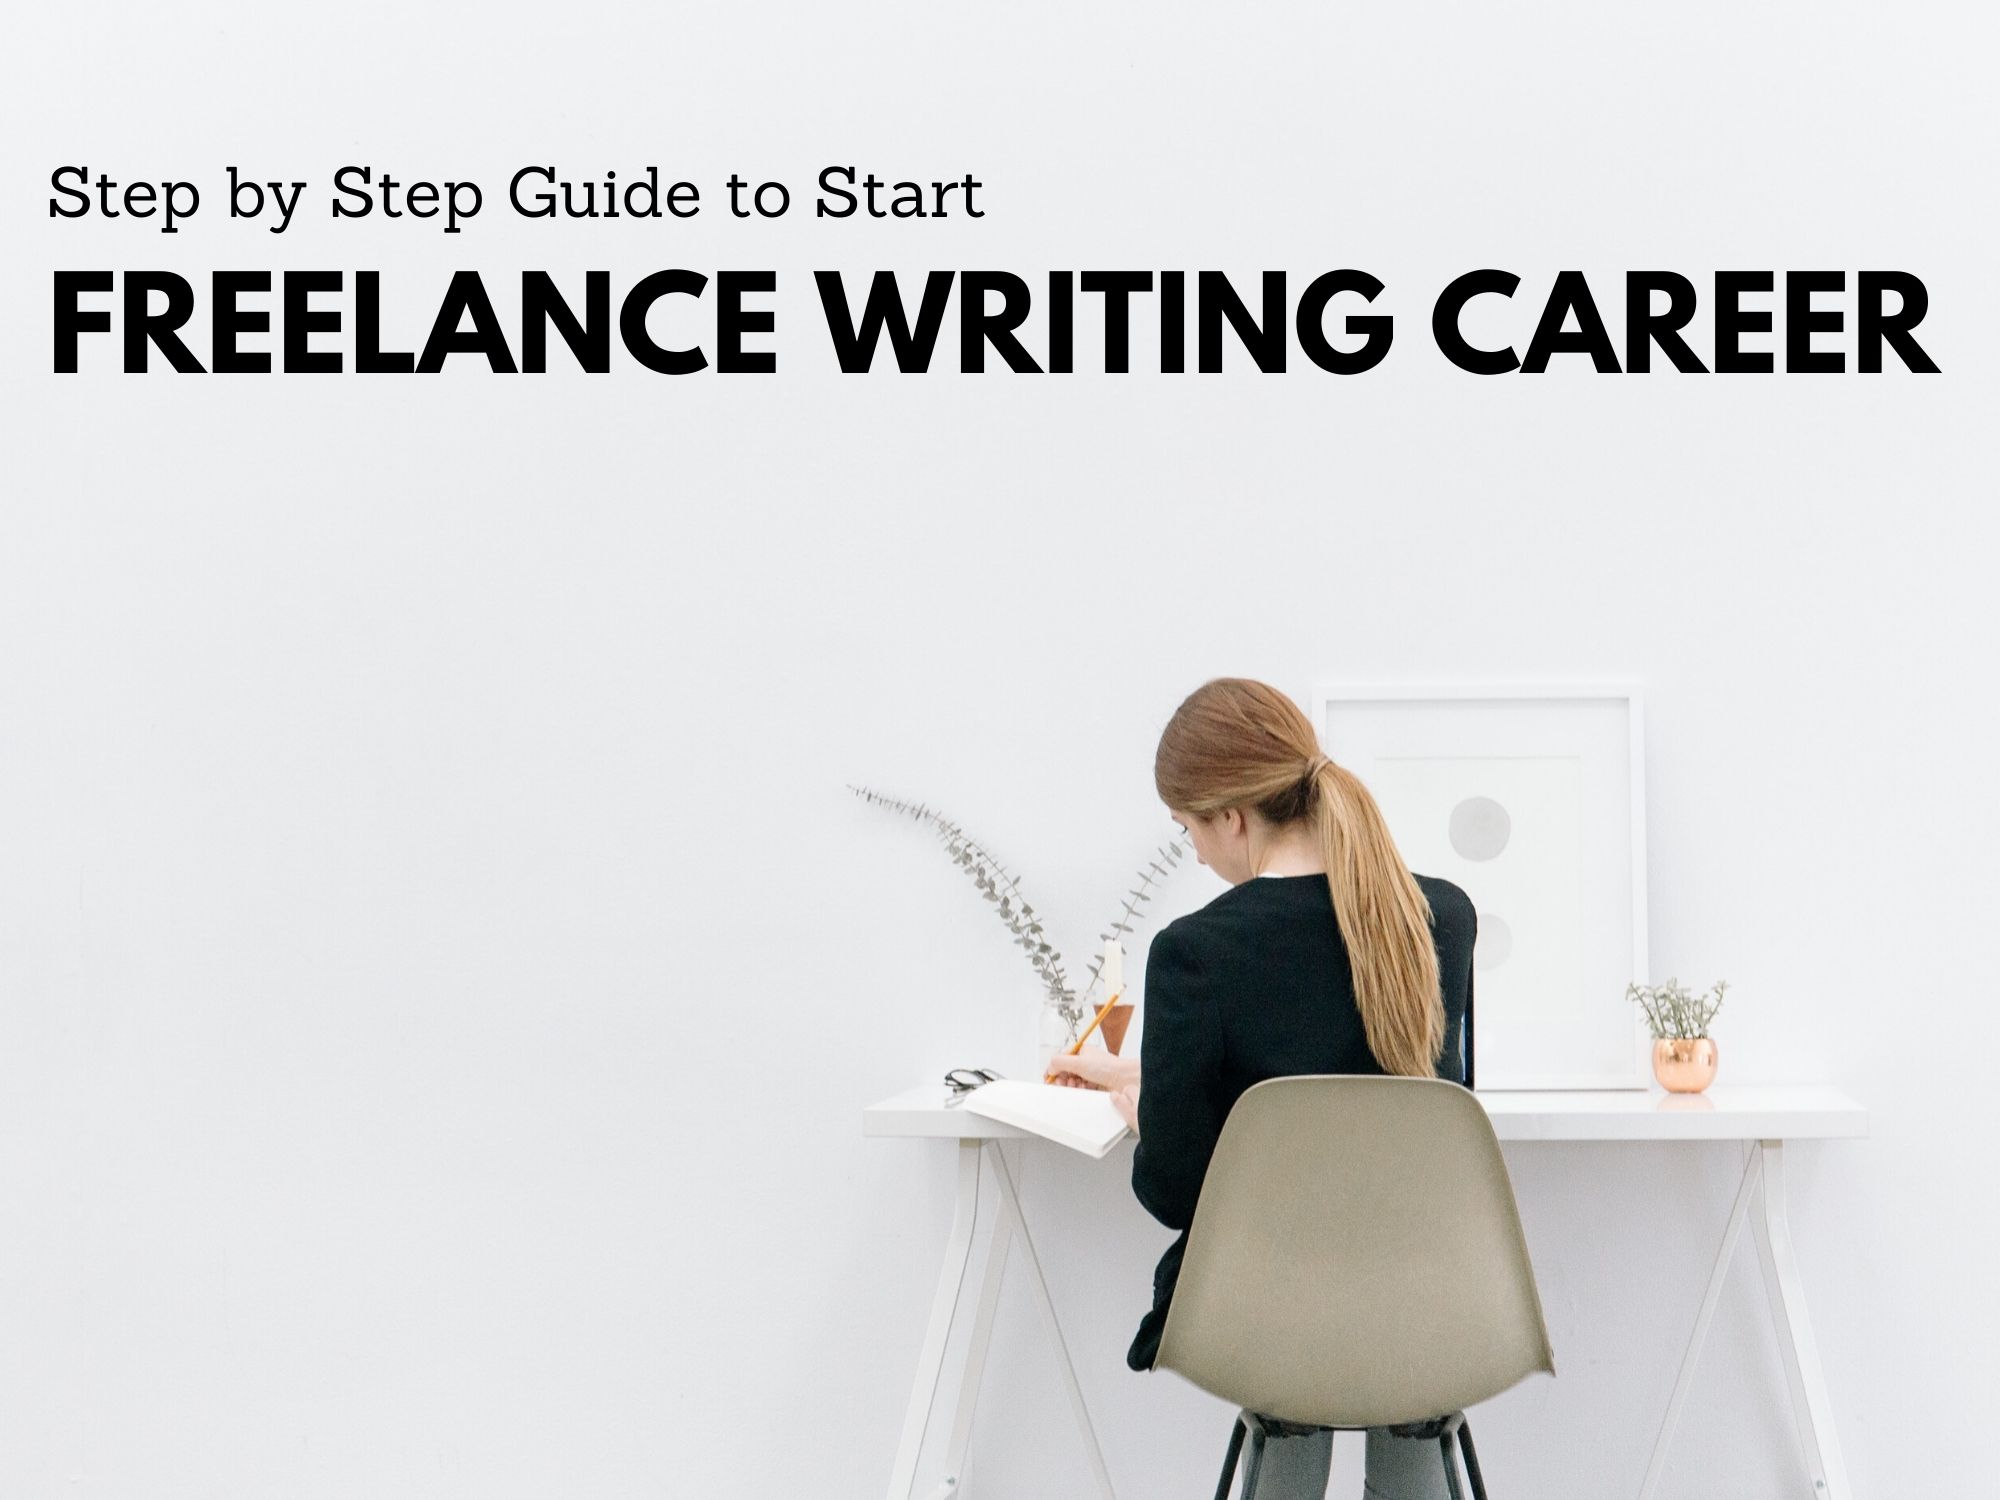 Step by step Guide to Start Freelance Writing Career